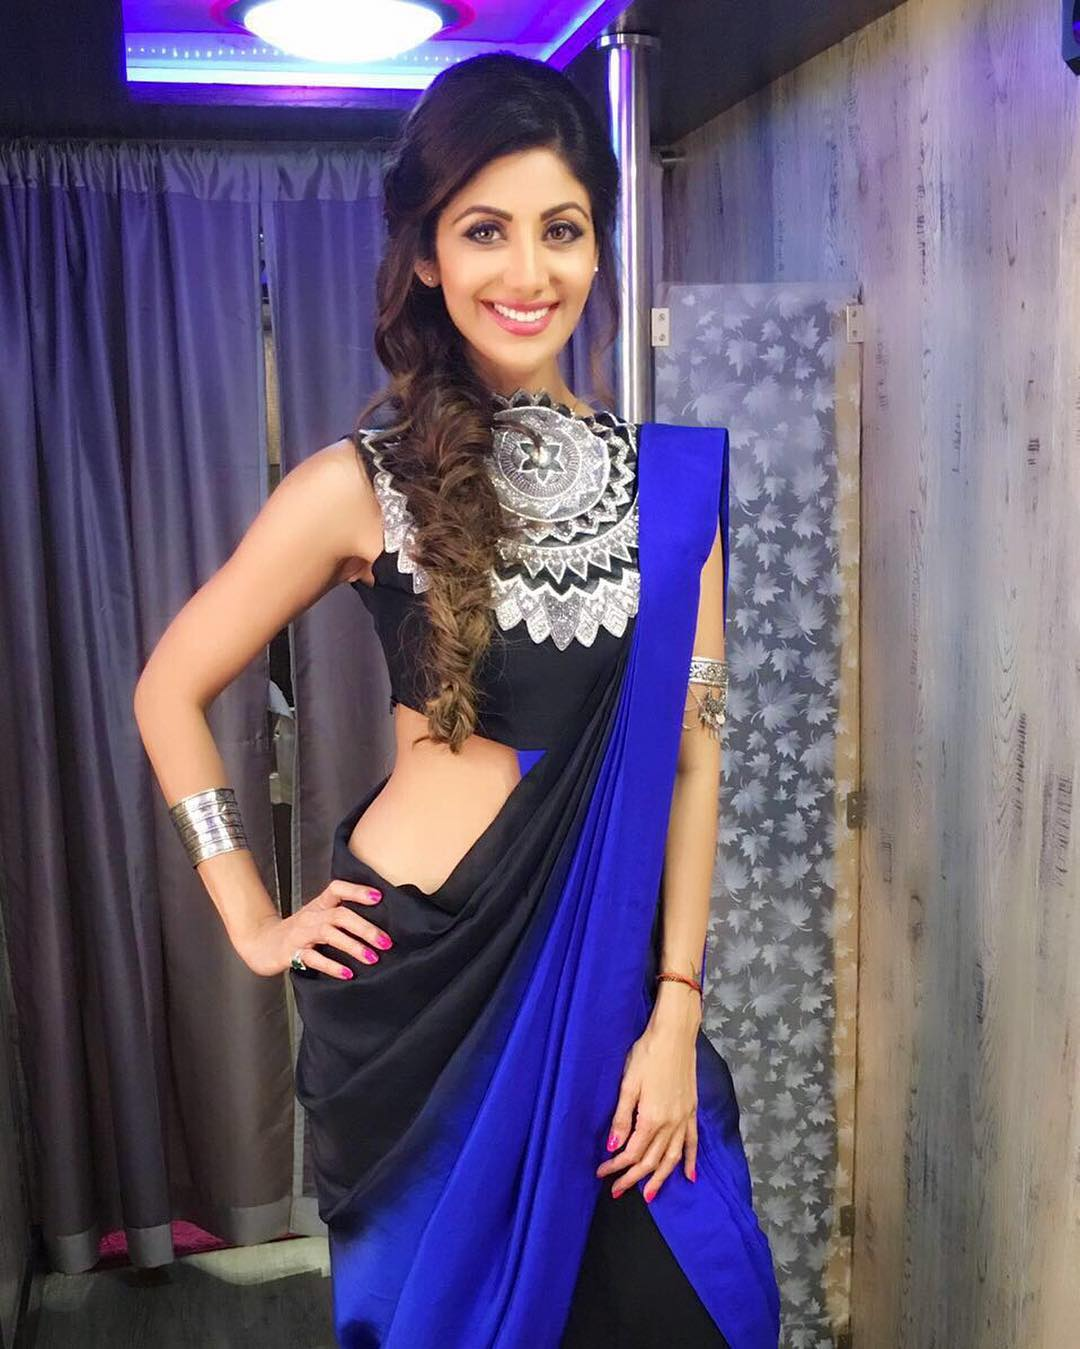 Shilpa Shetty Photo | Shilpa Shetty Picture | Shilpa Shetty Bikini